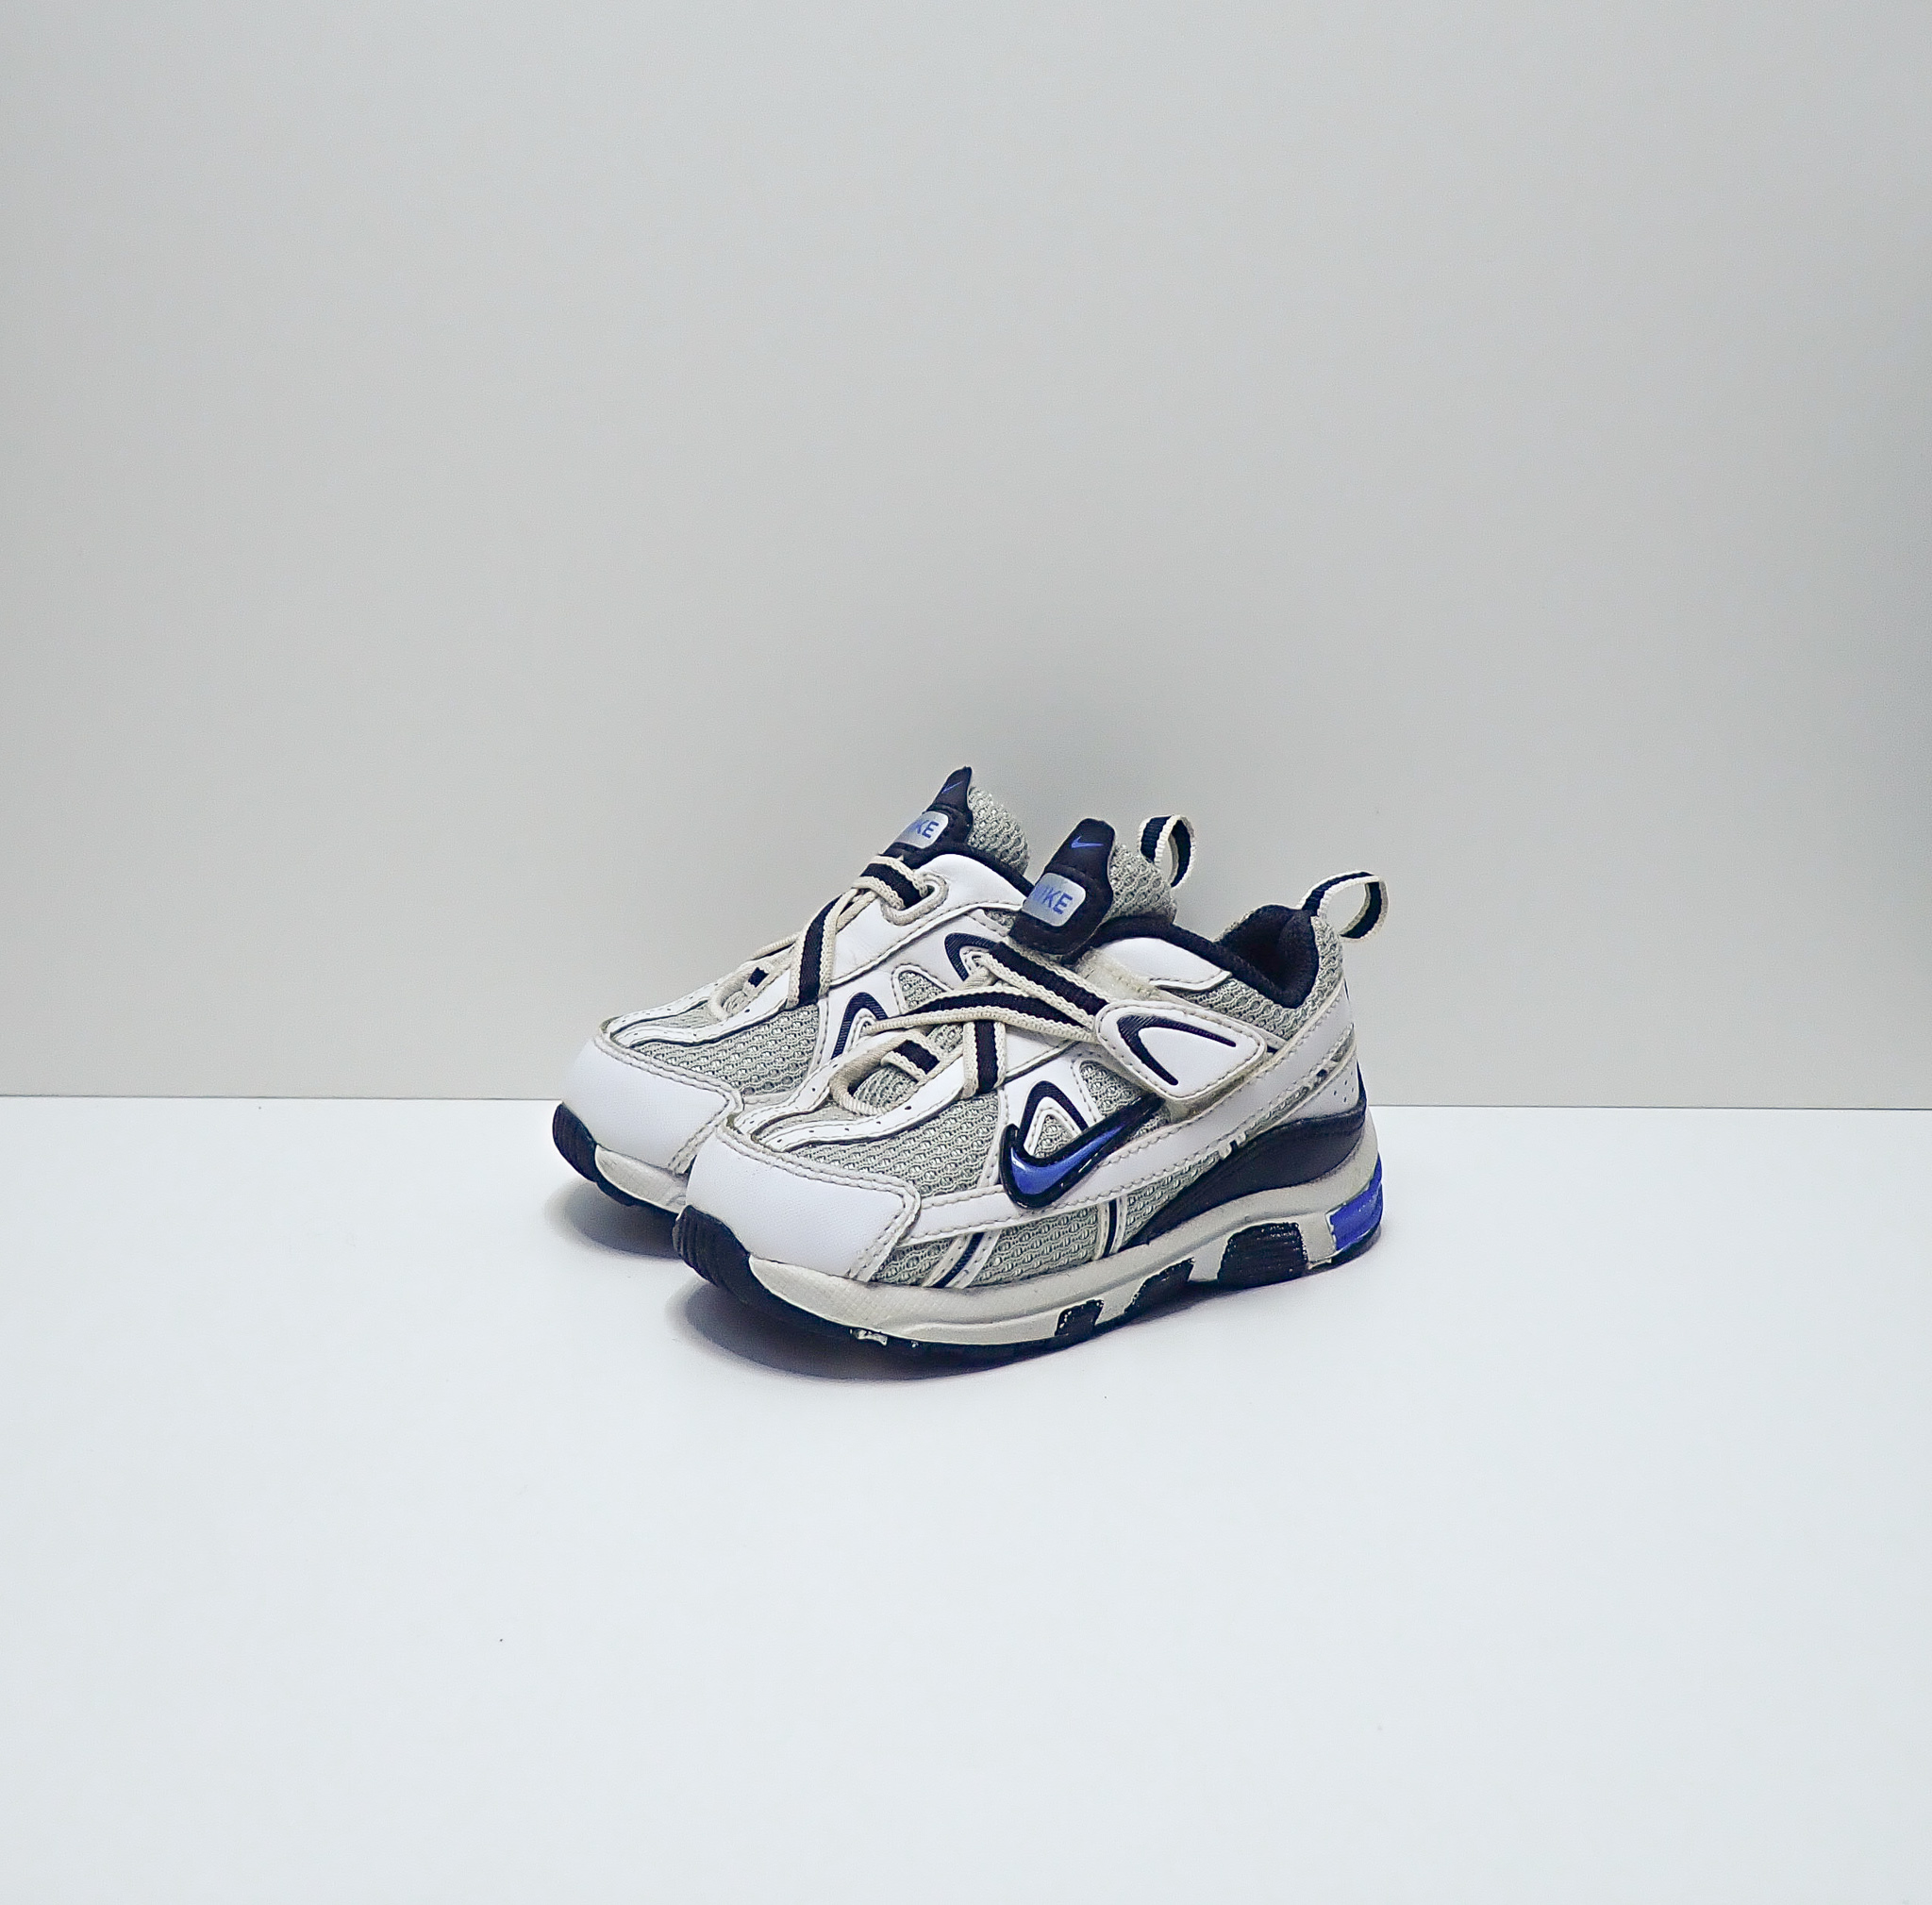 Nike INF T Run 2 ALT Toddler